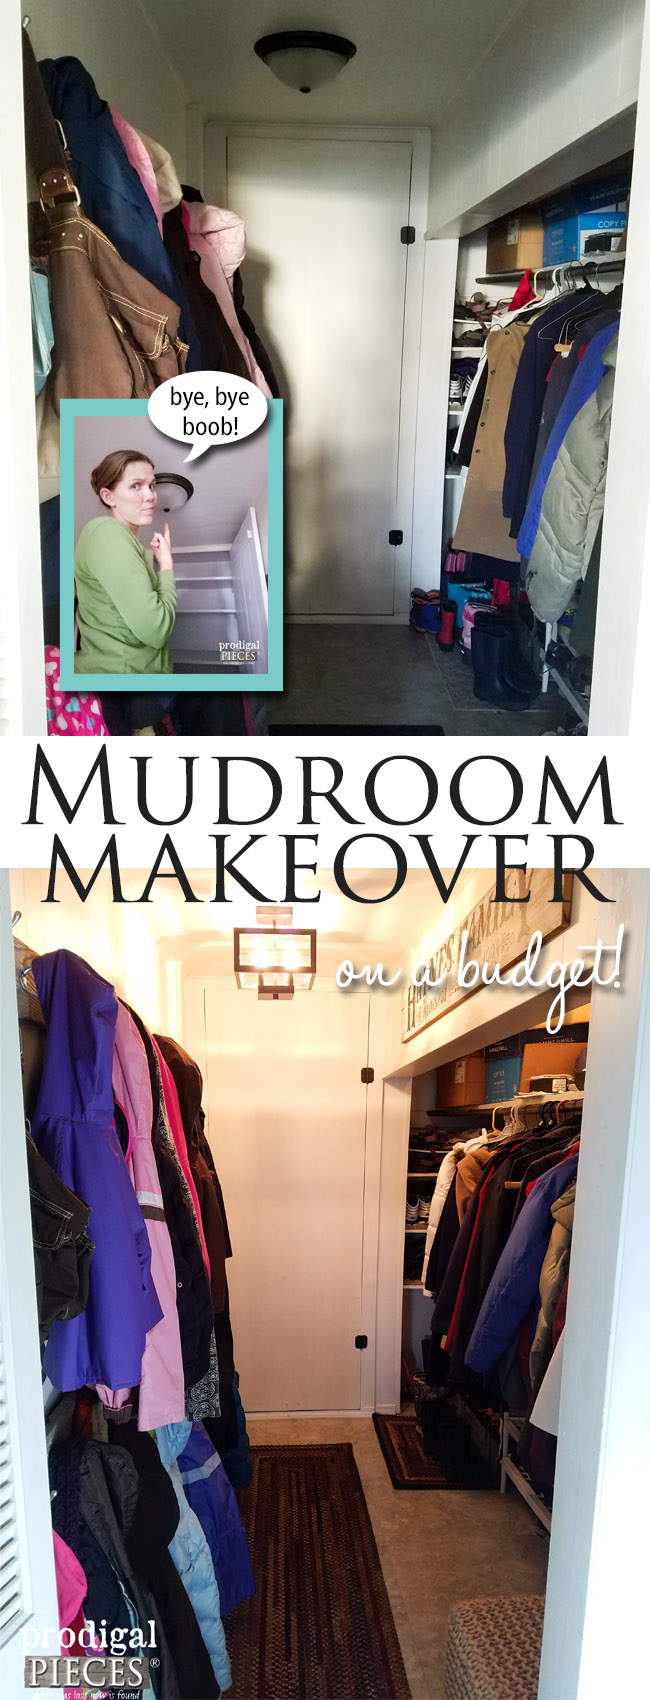 Don't Let a Budget Get in Your Way of Making Updates. Simple Fixes Can be Done! Mudroom Makeover by Prodigal Pieces | prodigalpieces.com